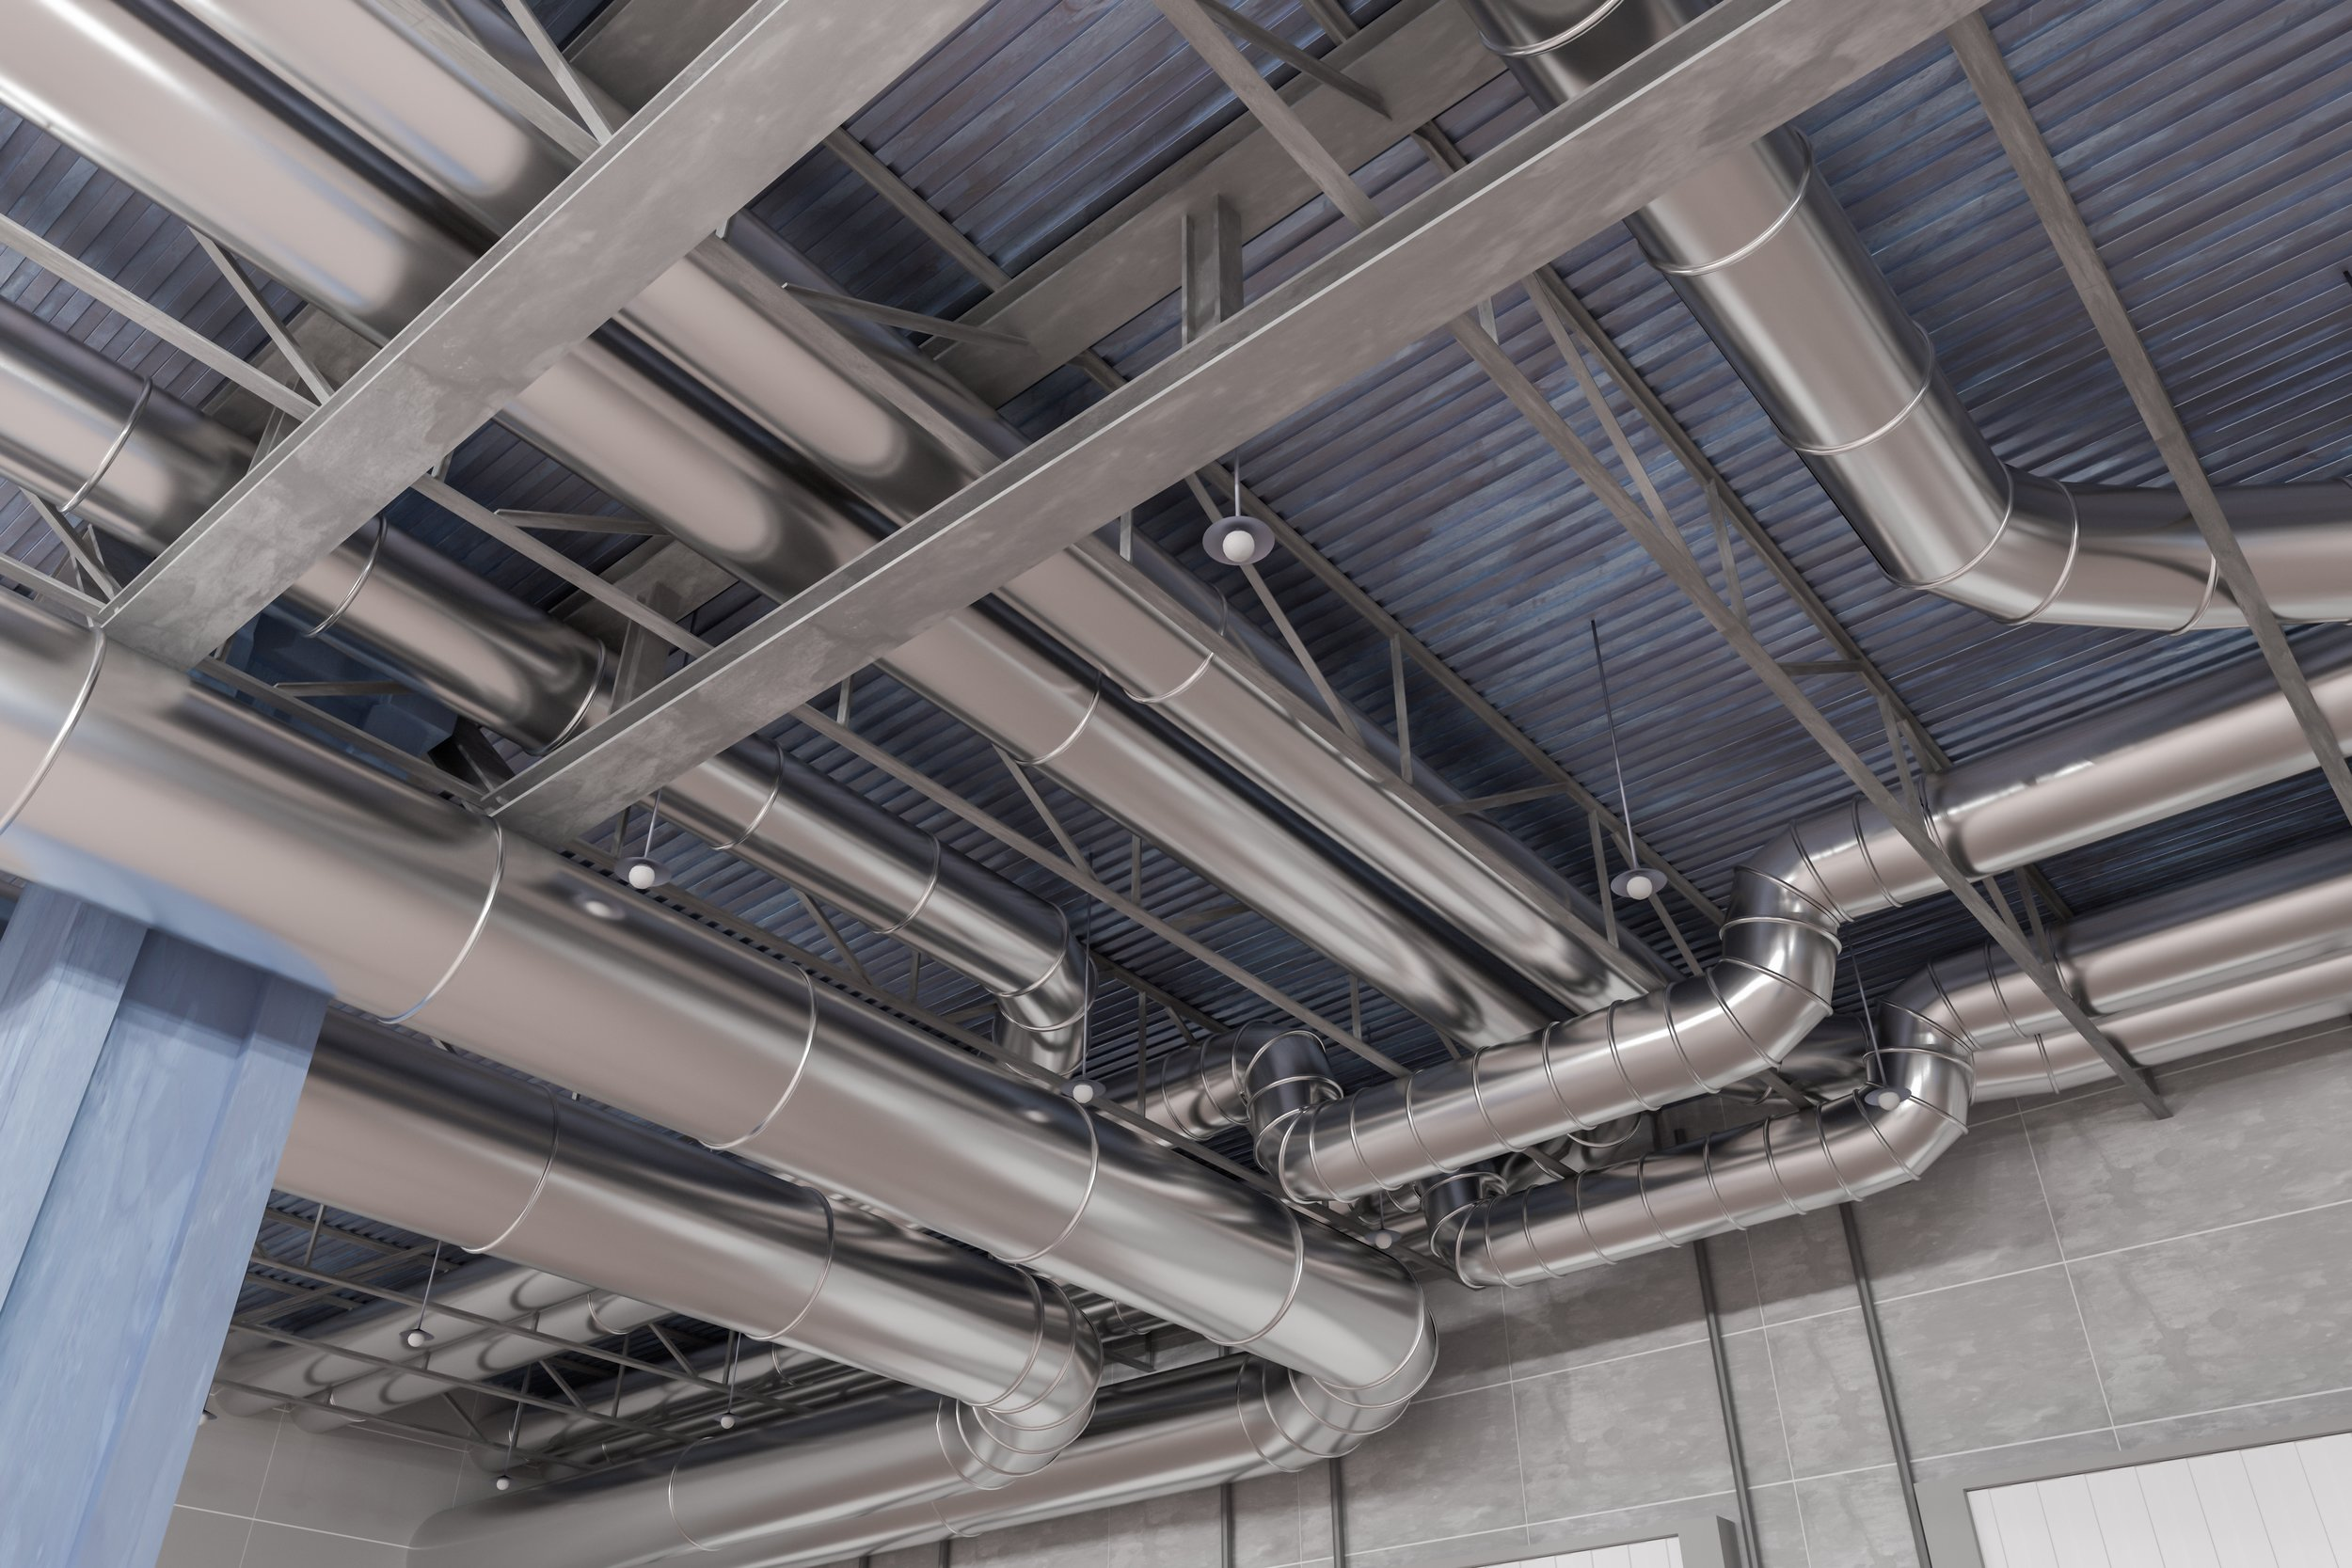 supply-and-exhaust-duct-systems.jpg